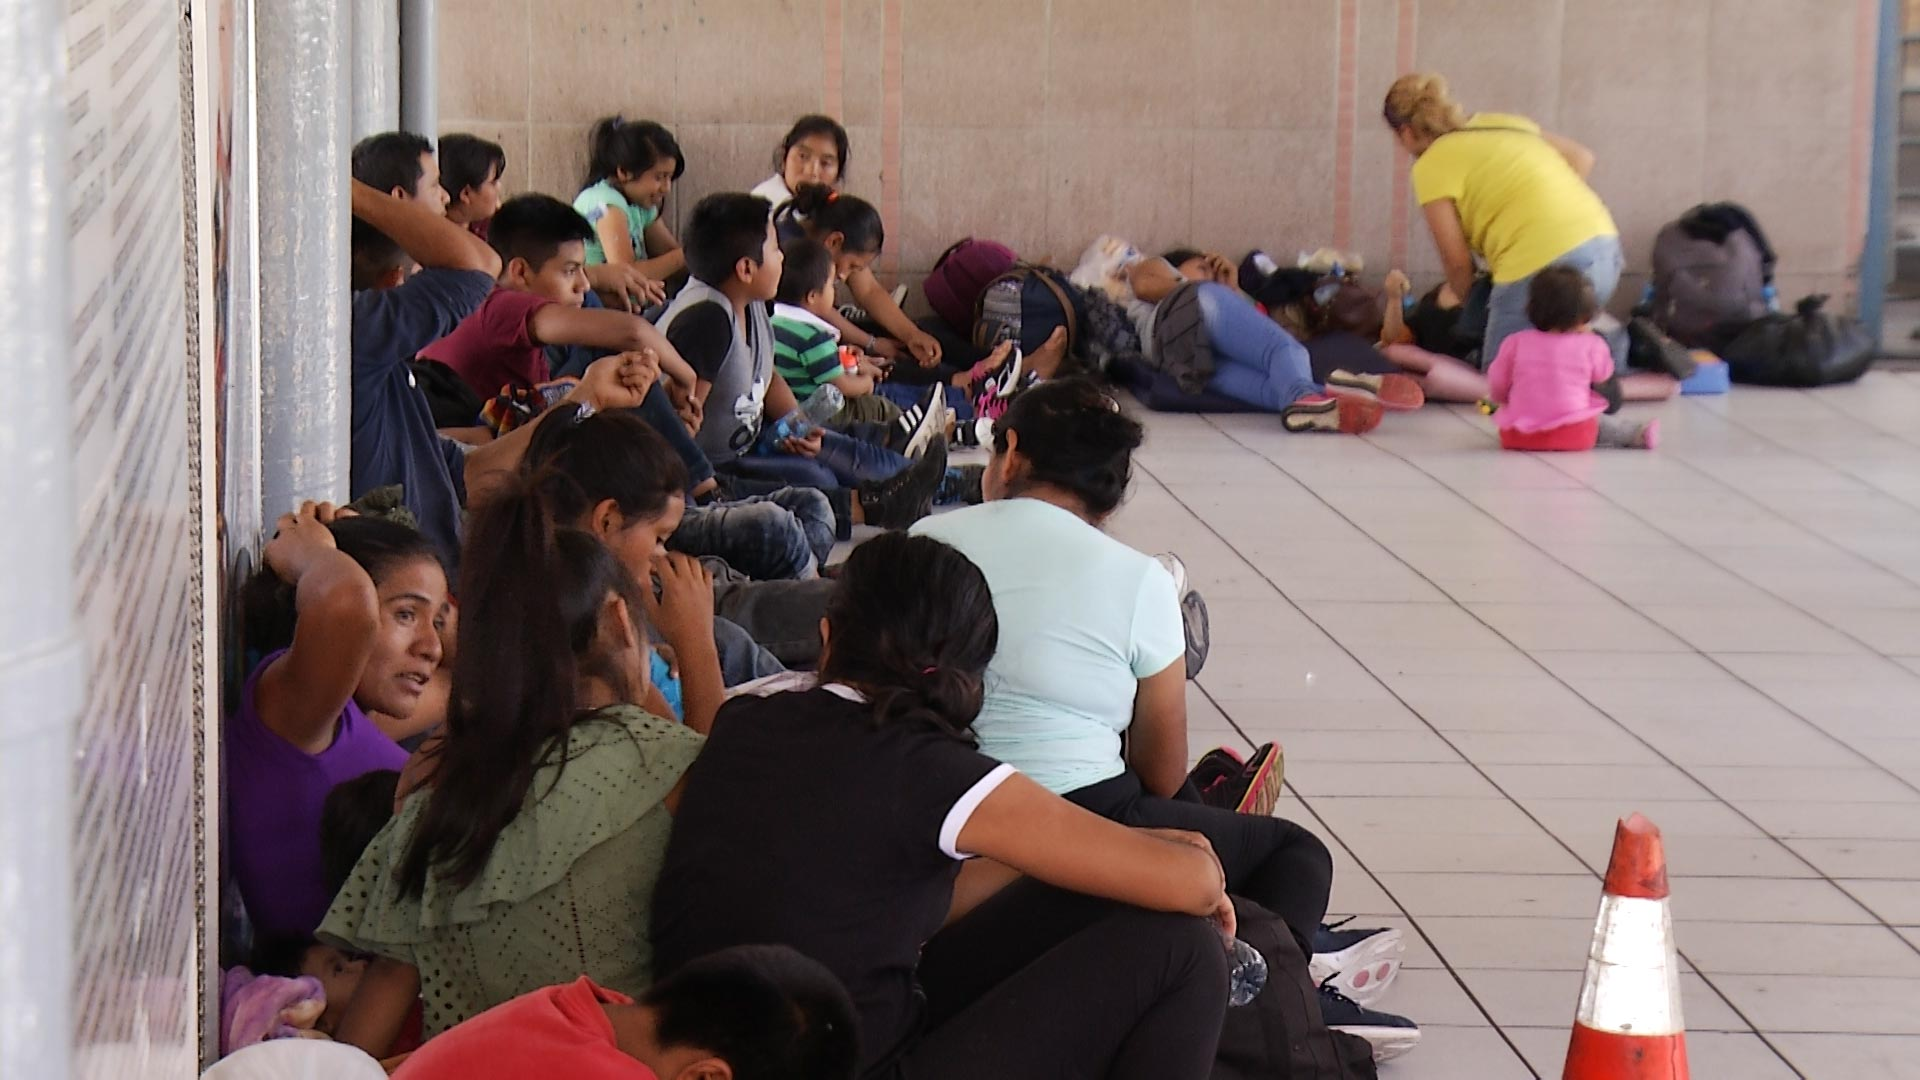 360 nogales asylum seekers